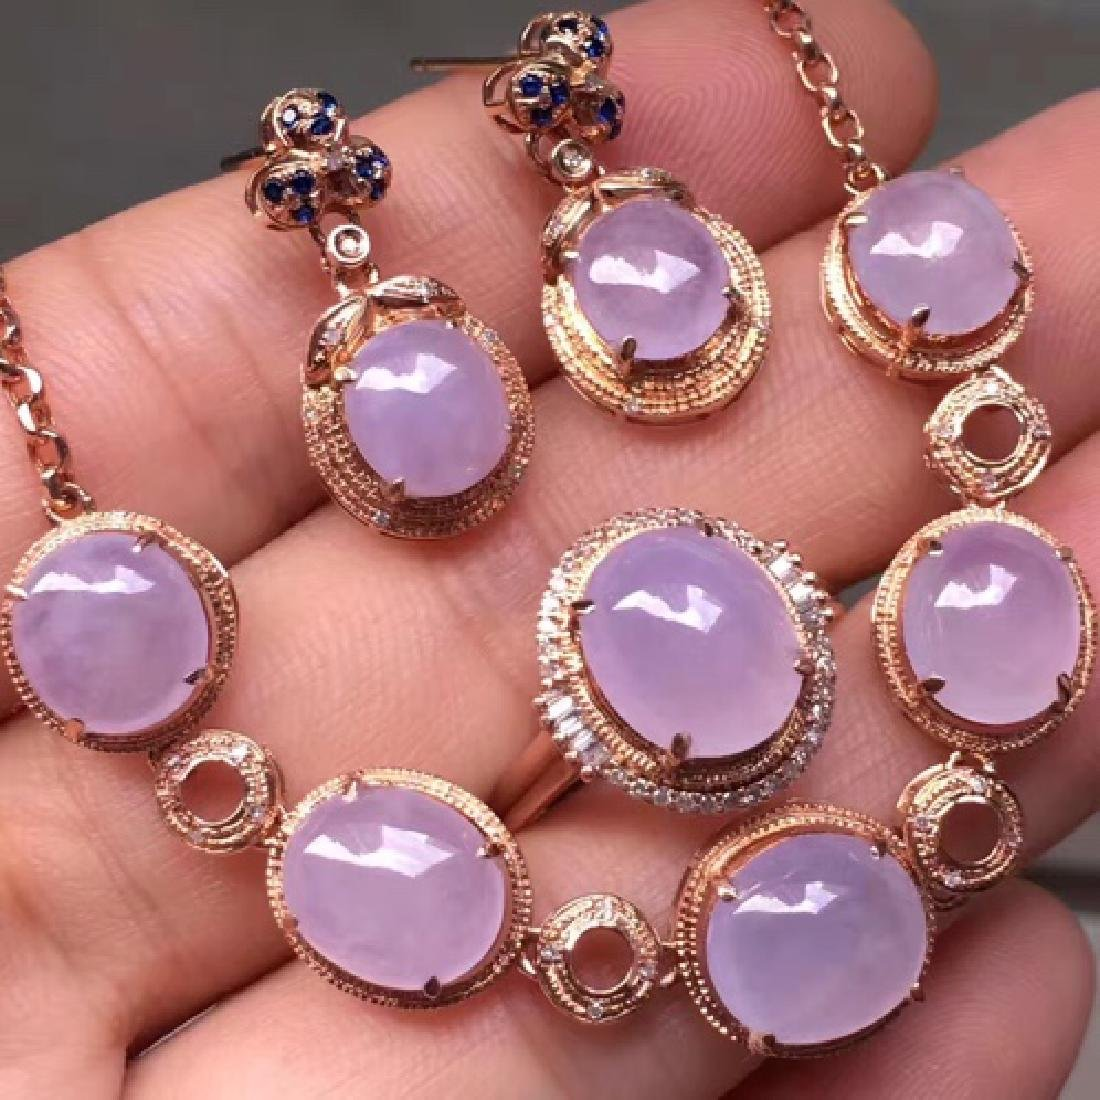 NATURAL EGG-SHAPED VIOLET JADEITE NECKLACE AND EARRING